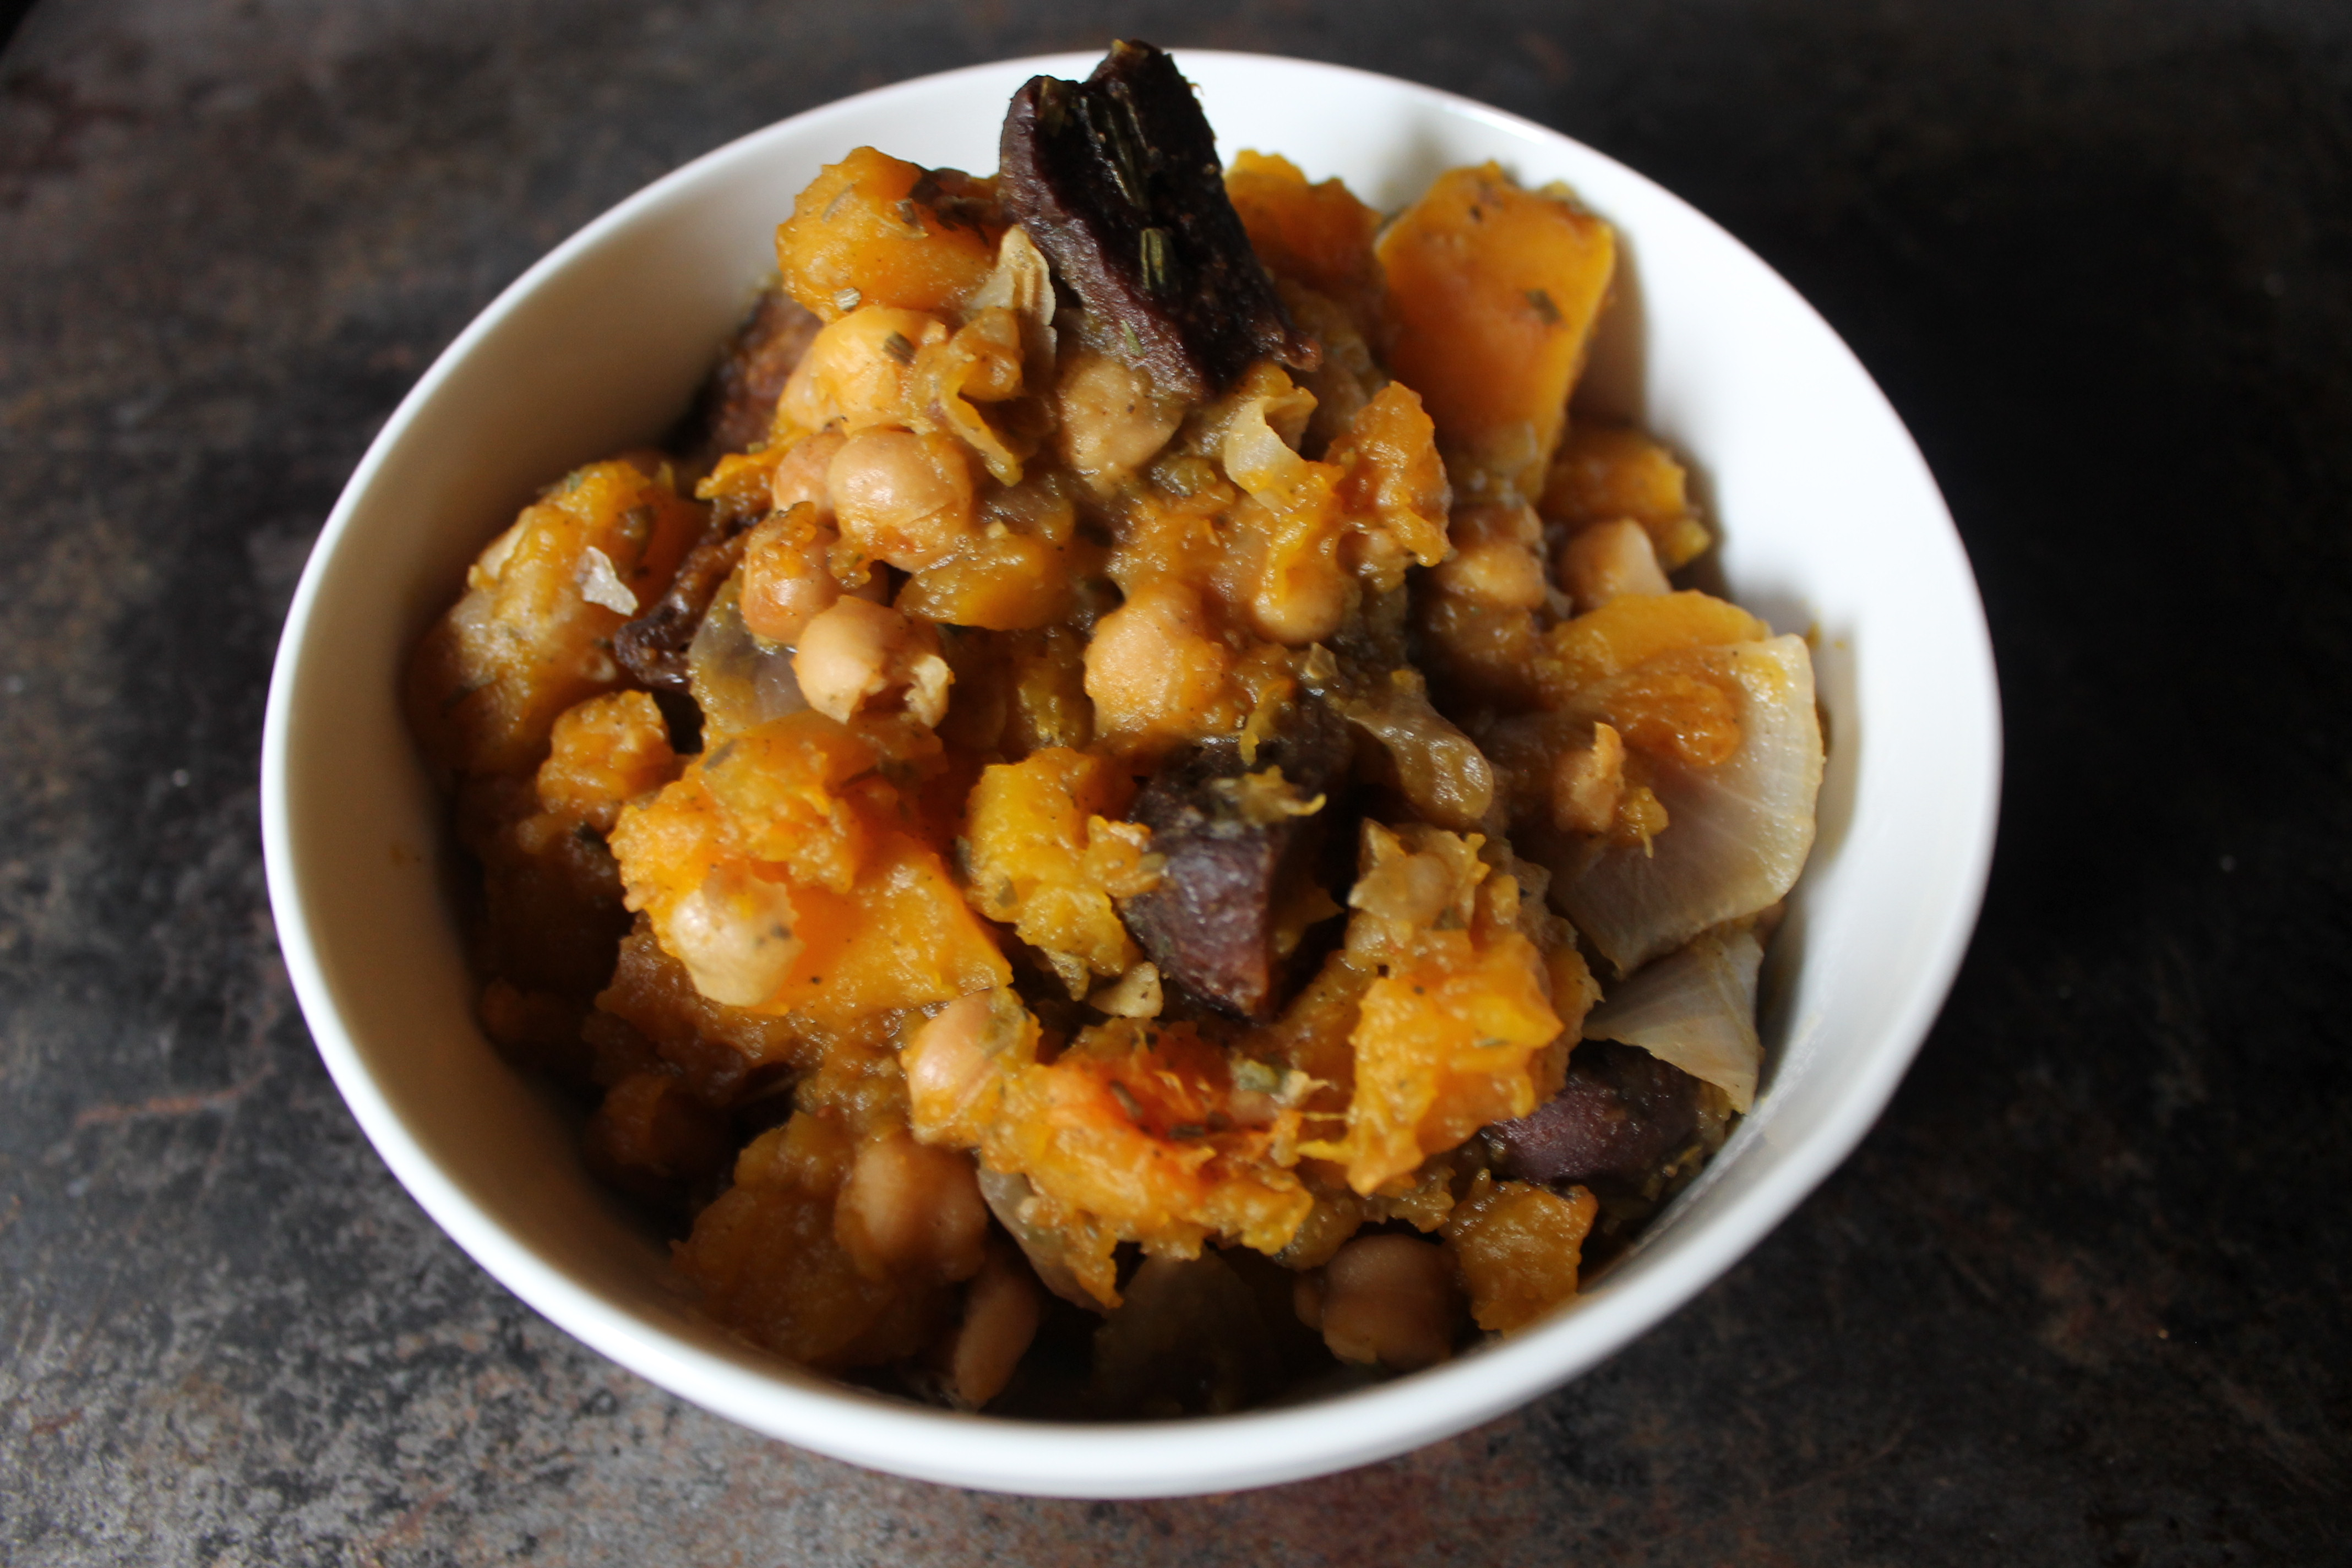 vegan_slow_cooker_butternut_squash_with_figs